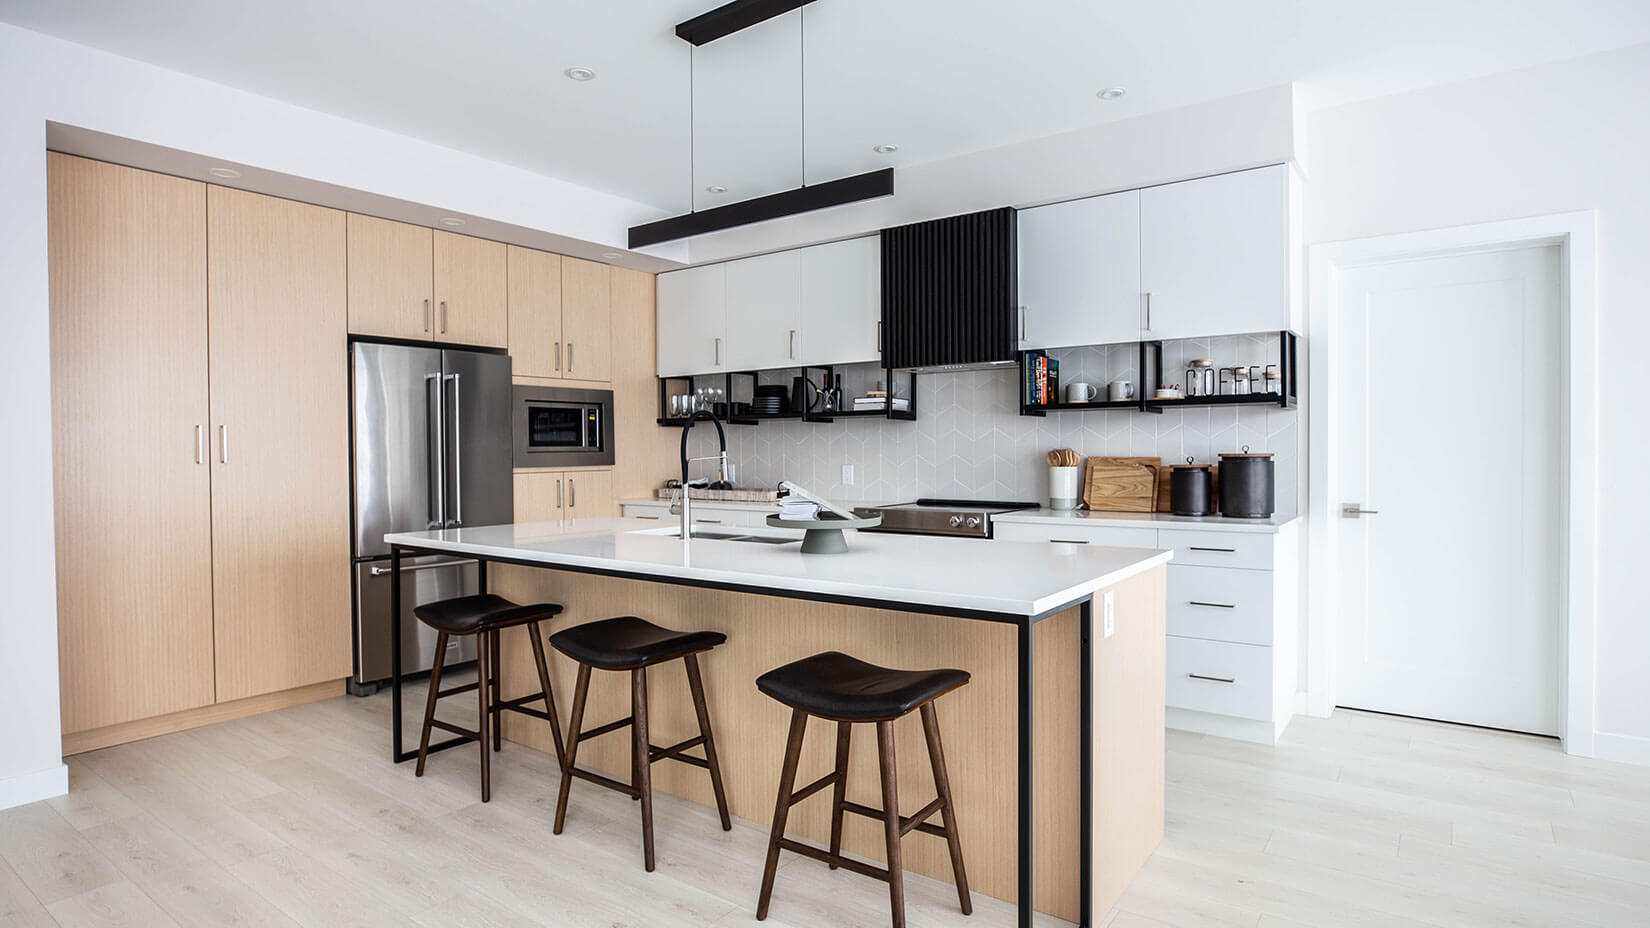 Modern kitchen with island and bar stools